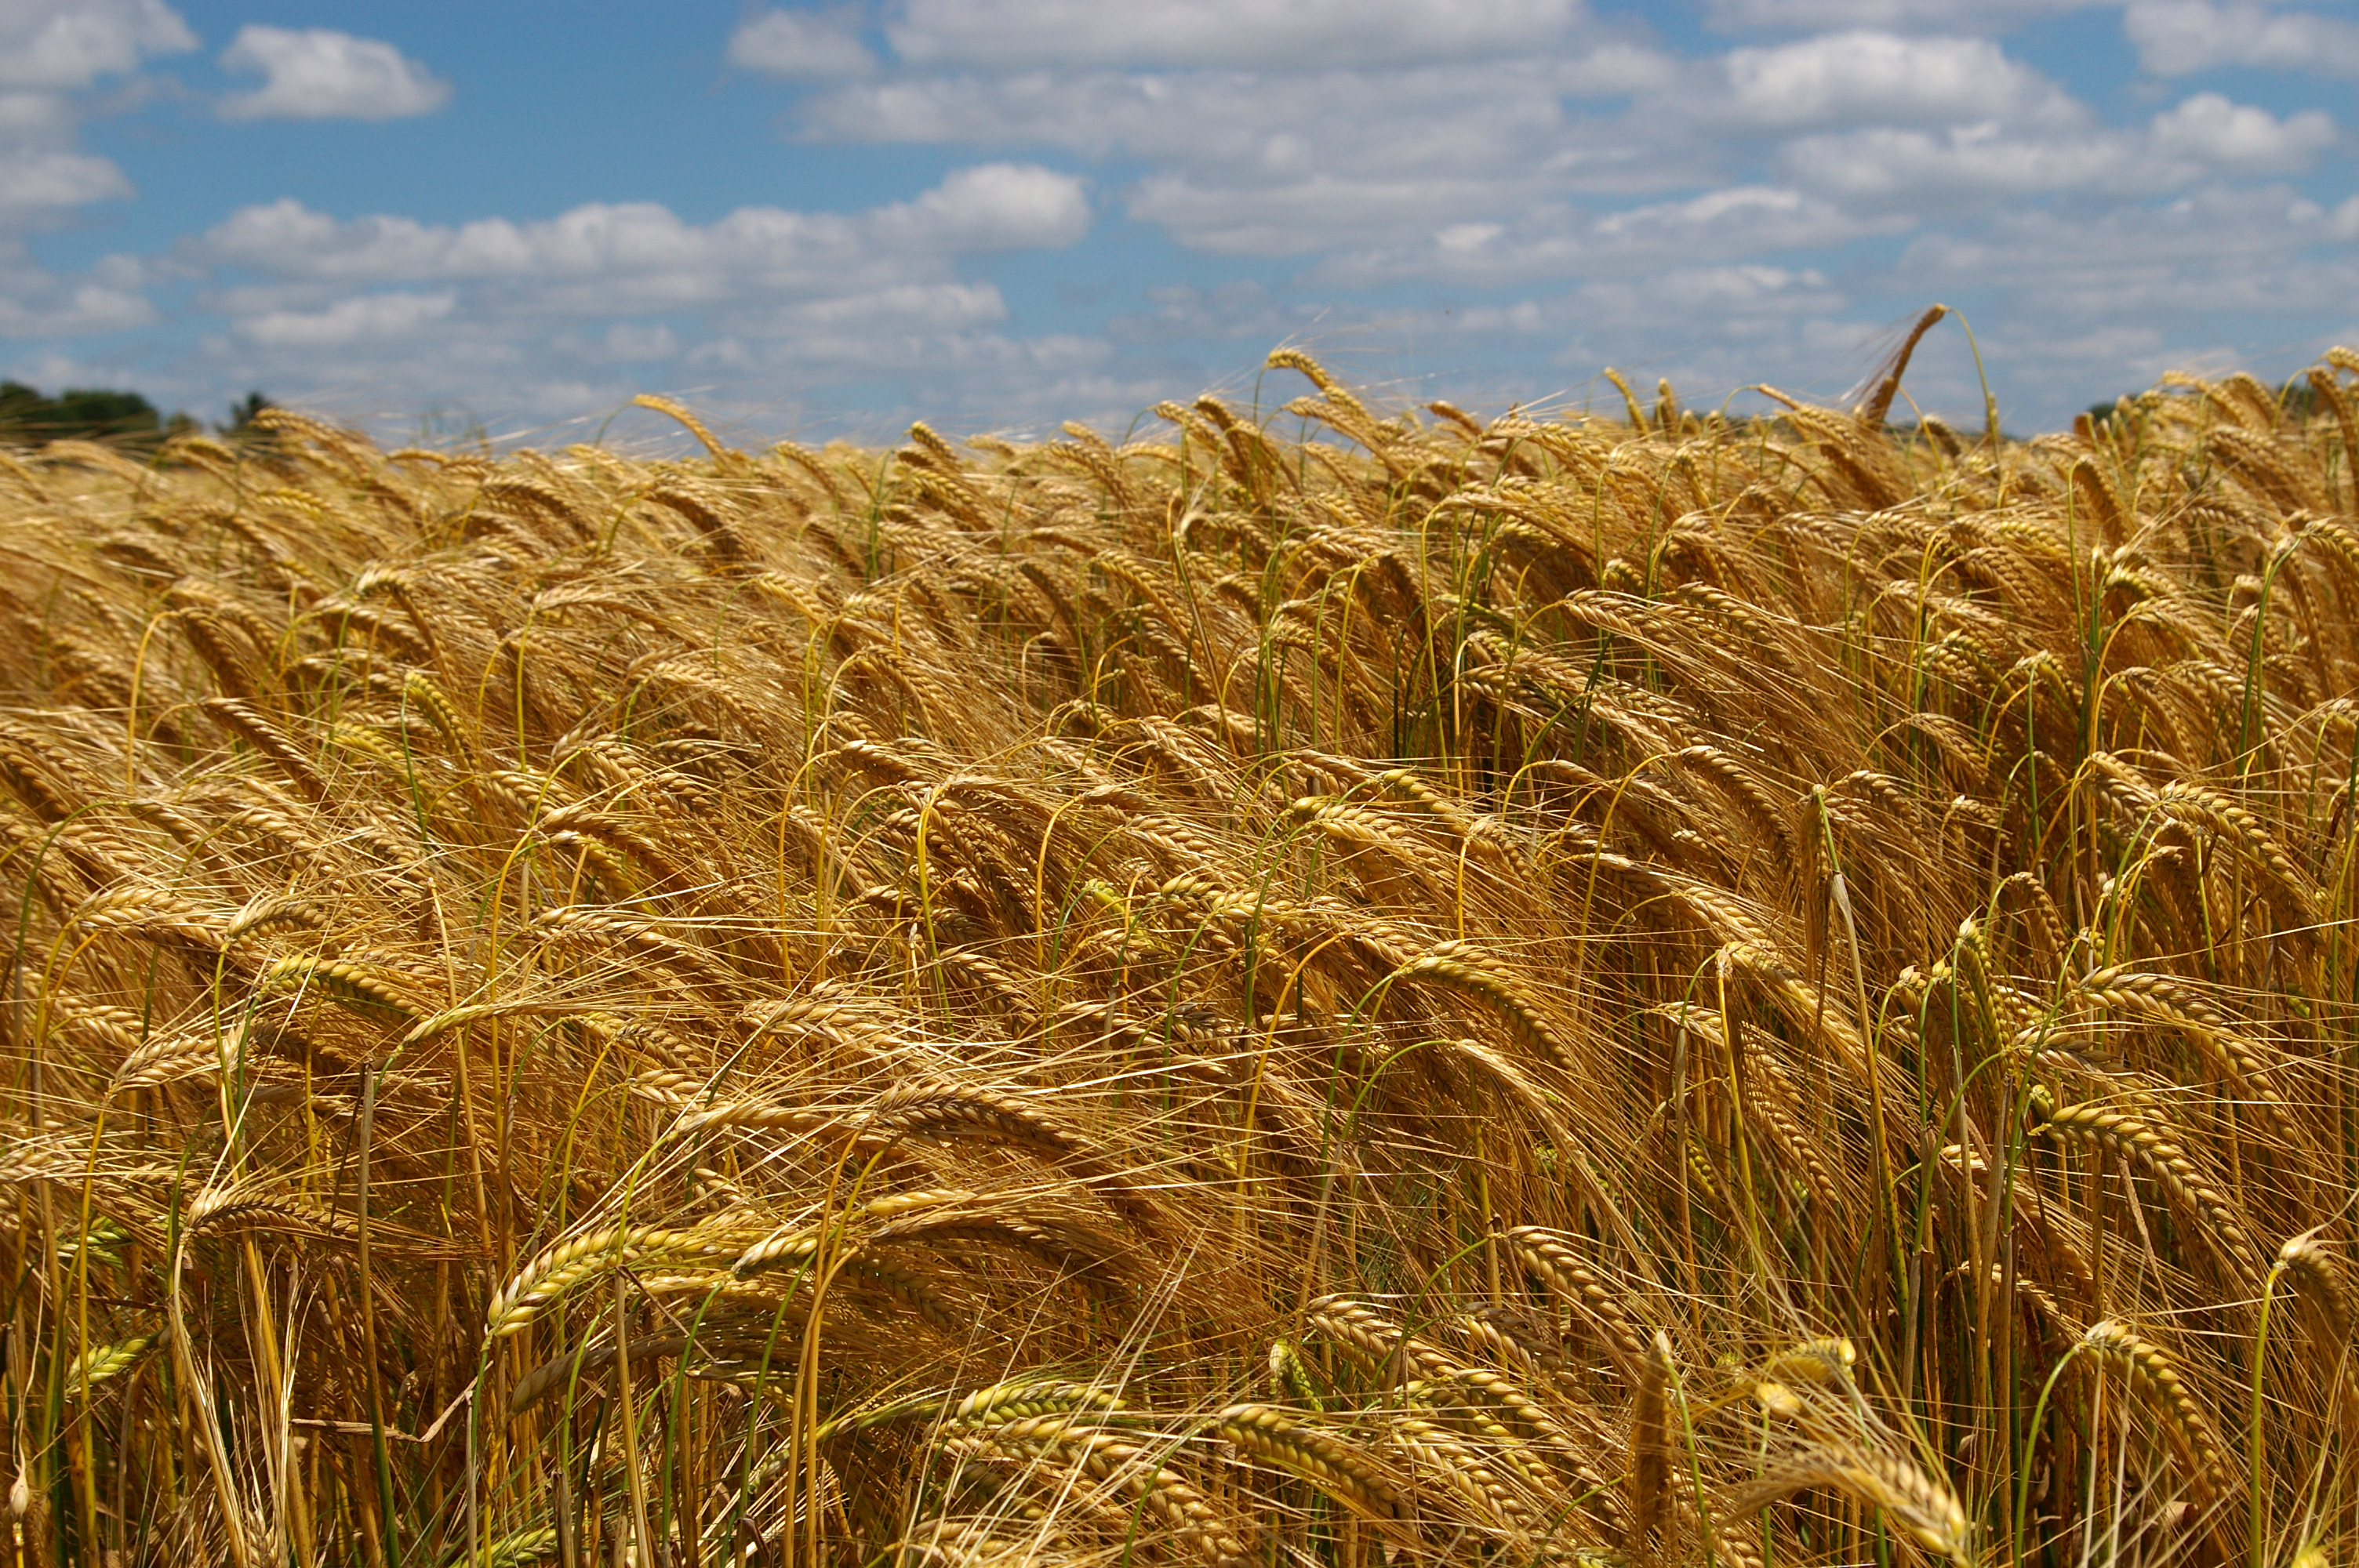 Bearded wheat in Thésée, Loir-et-Cher, in France. [Sybarite48/Fotopedia].